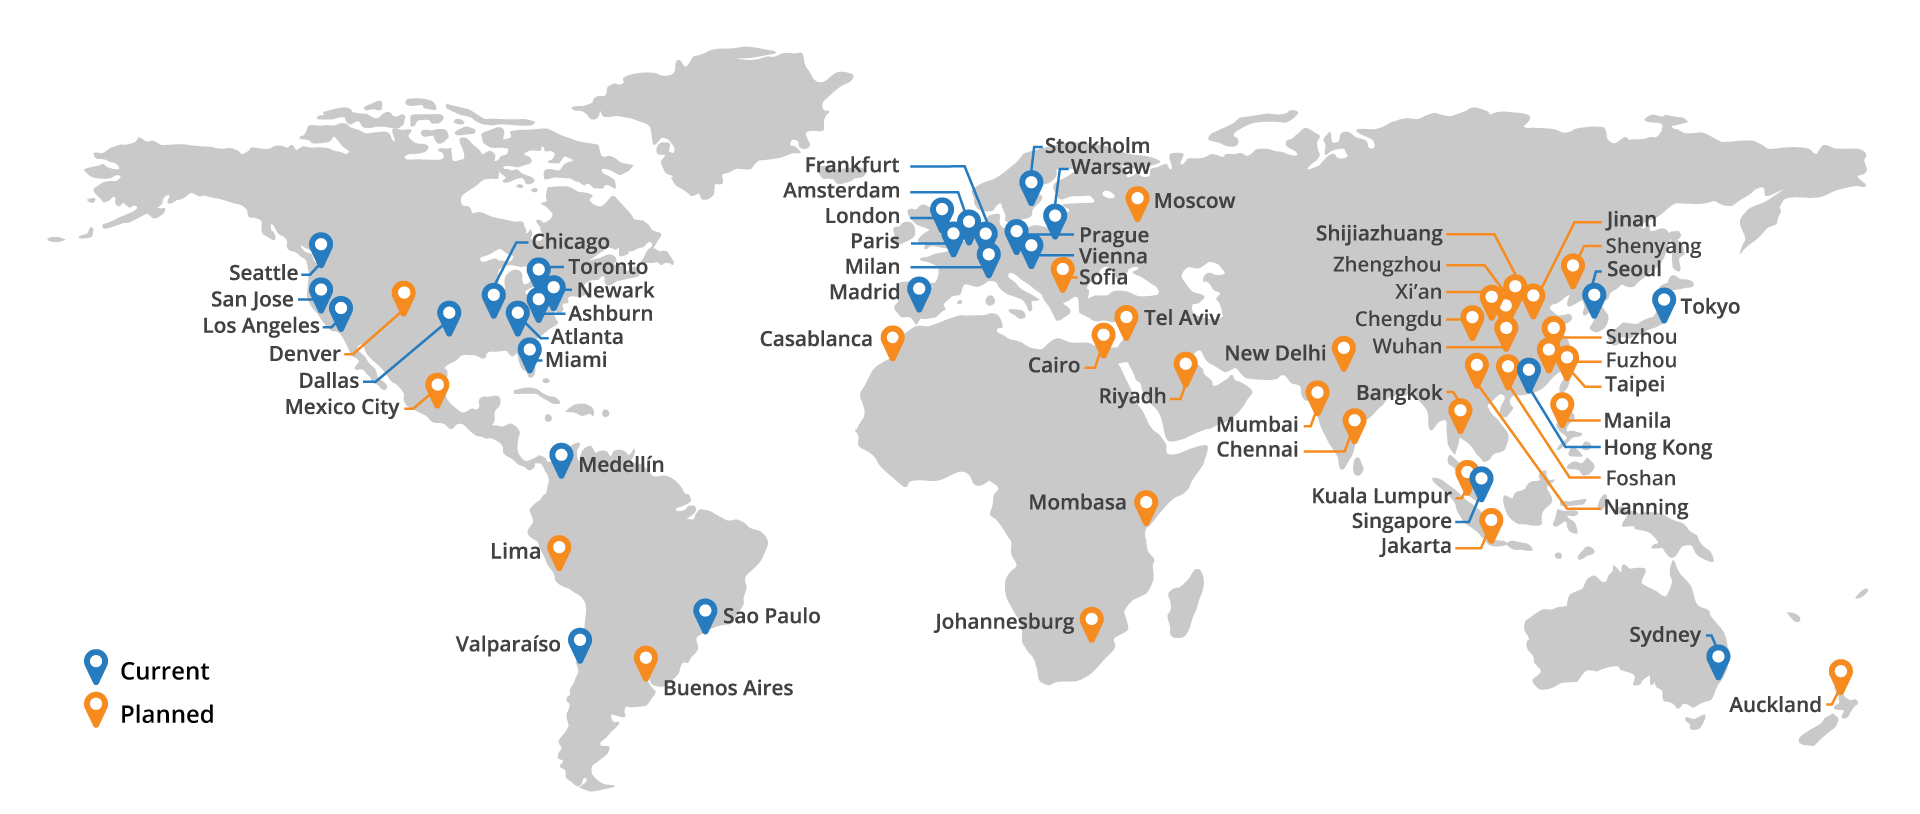 CloudFlare's Network Growth Plans for 2015